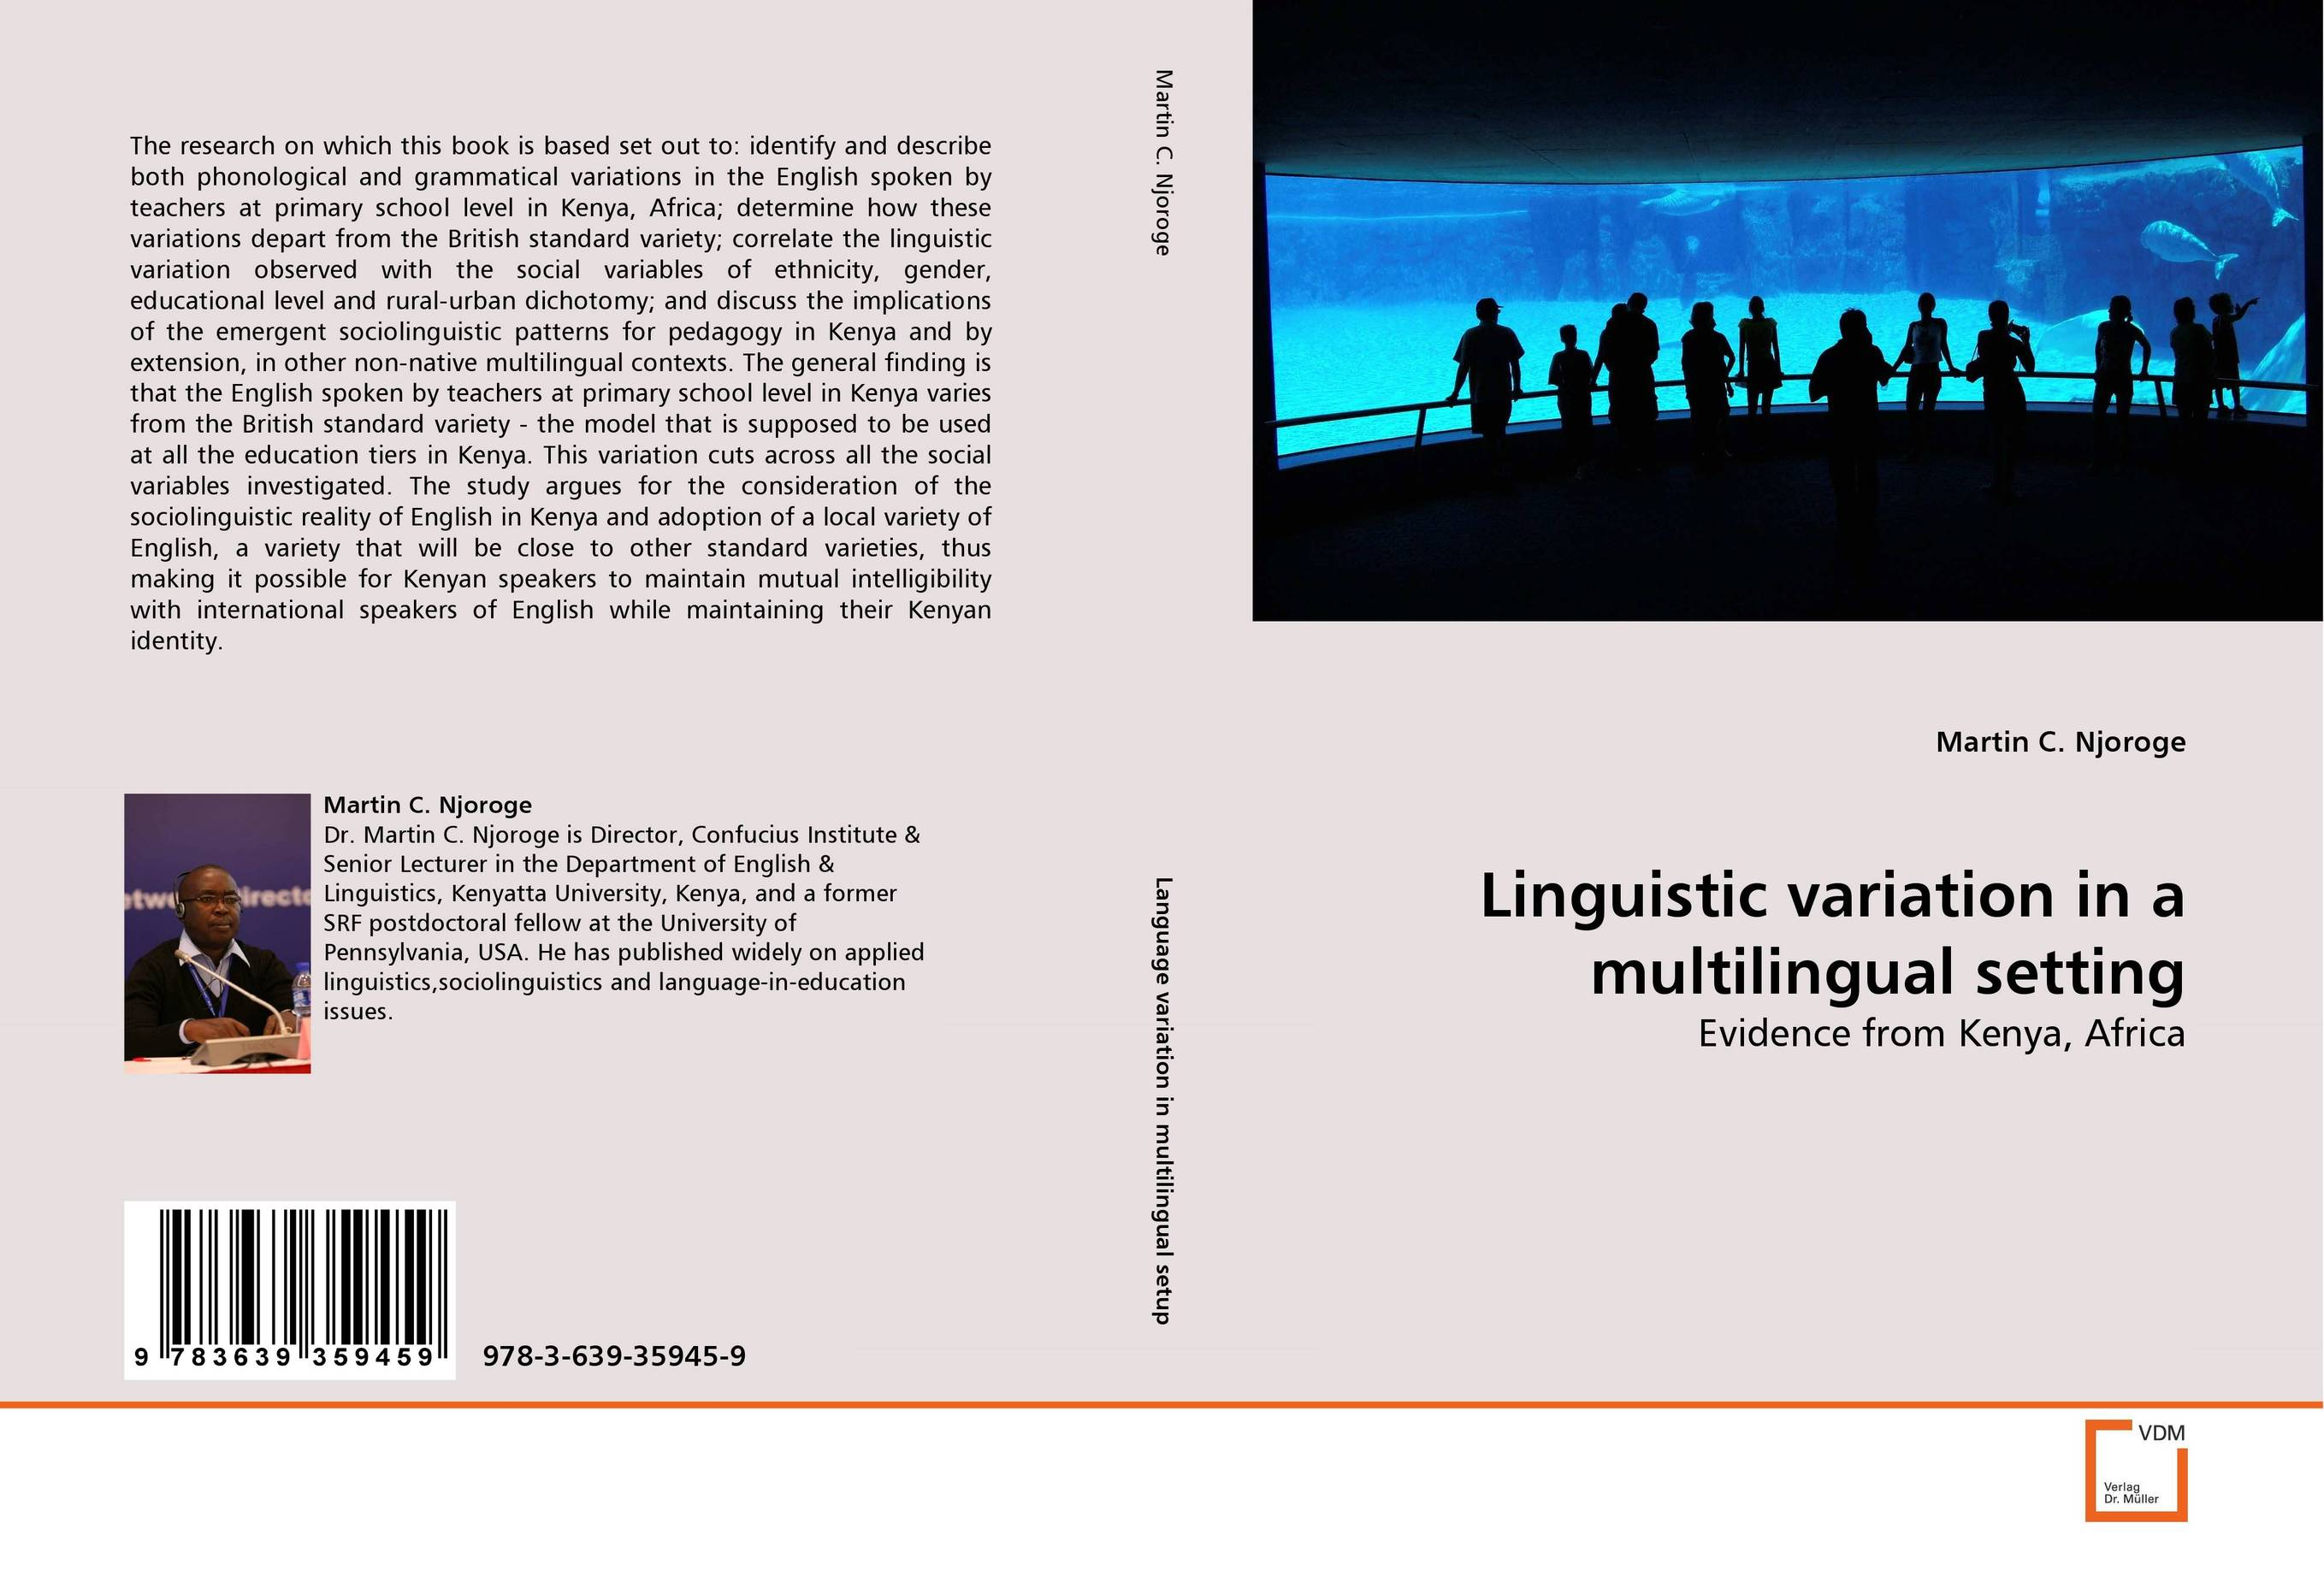 Linguistic variation in a multilingual setting azimuth azimuth the touchstone depart 3 сd